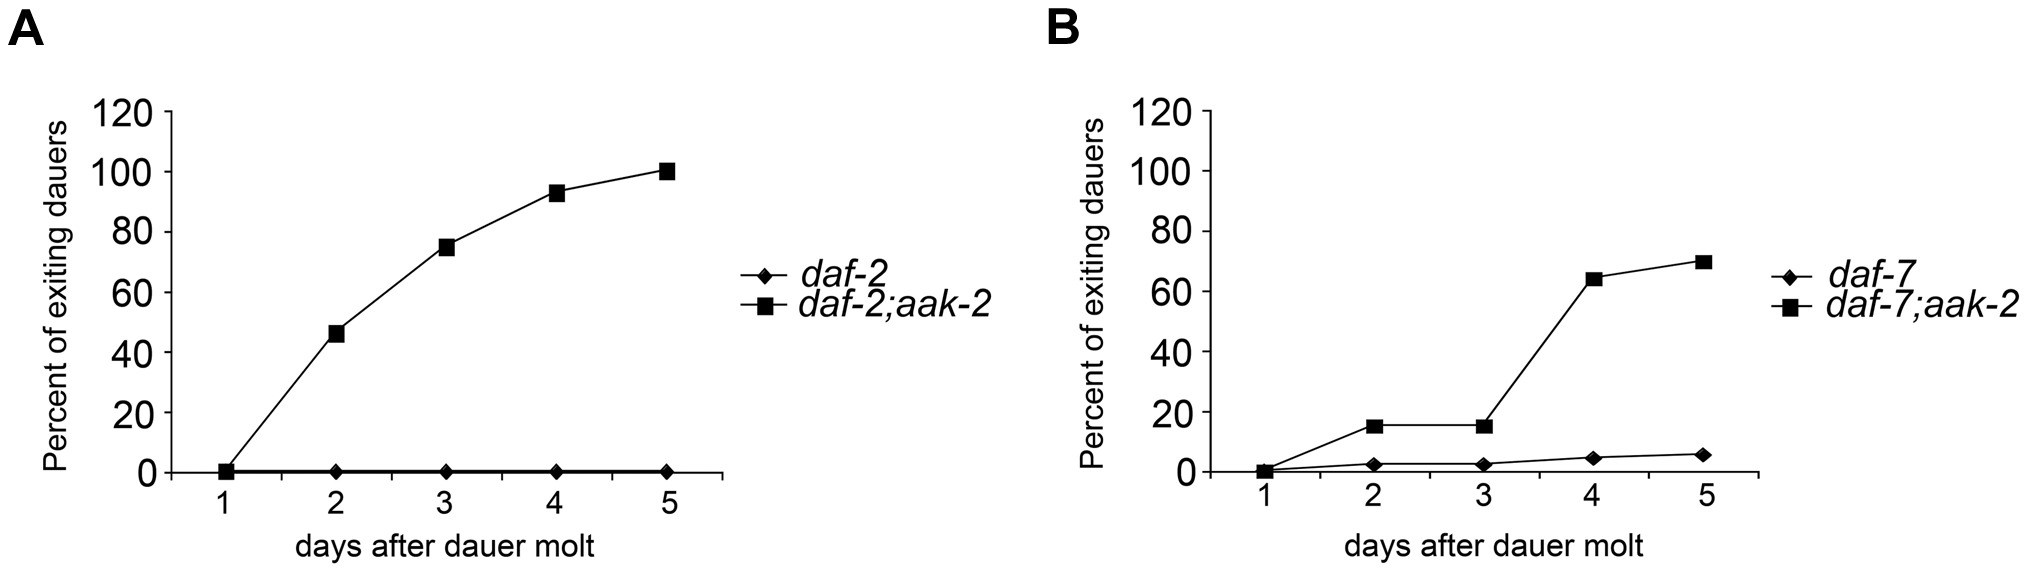 <i>aak-</i>2 deficiency causes dauer exit.